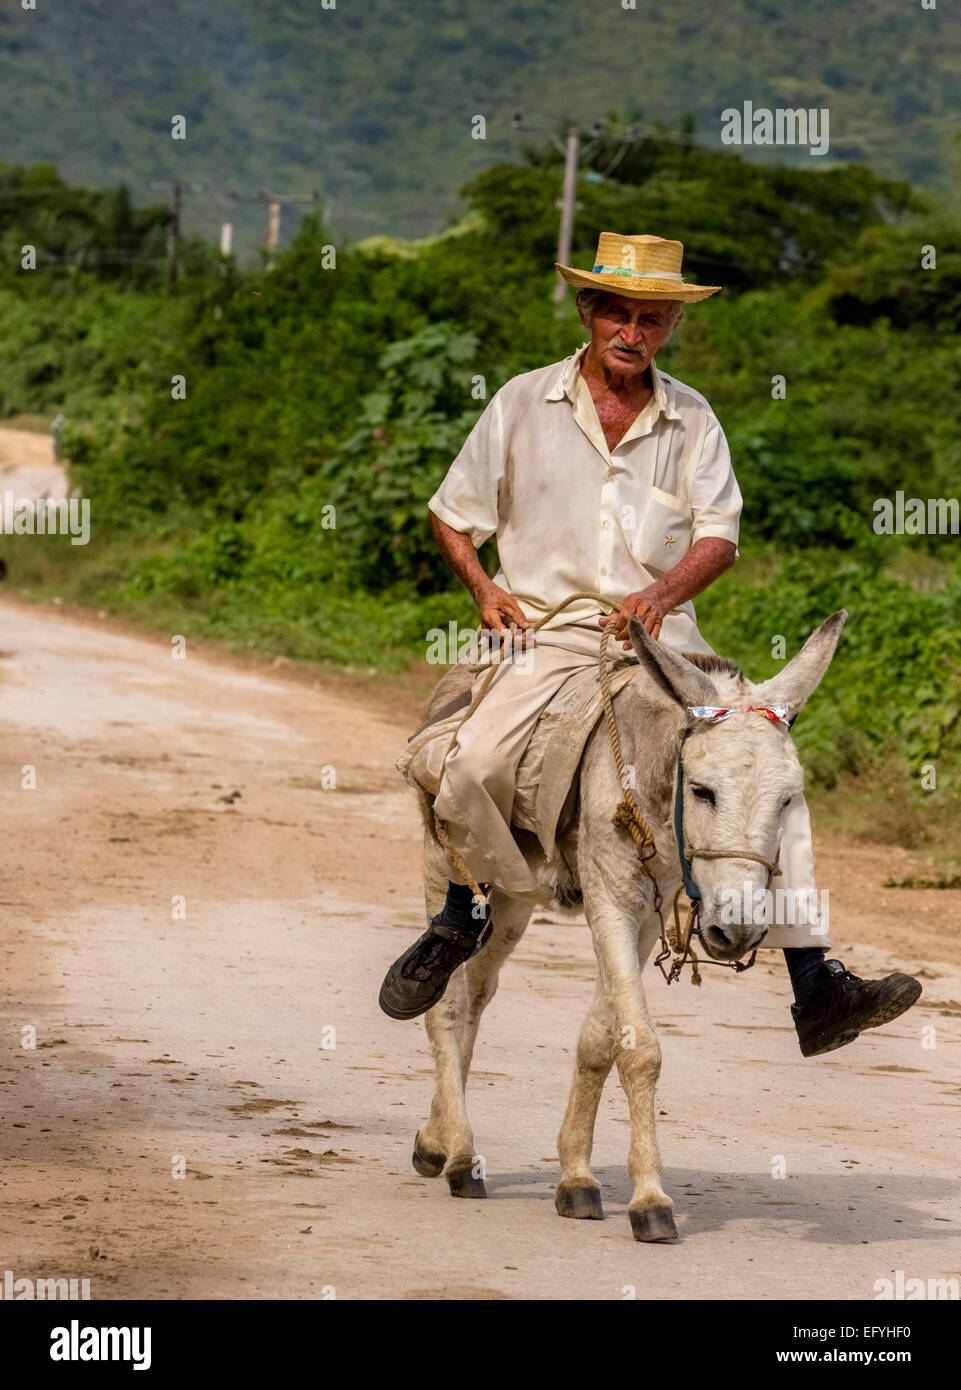 Elderly Cuban farmer on muleback, Valle de los Ingenios, Trinidad, Sancti Spiritus Province, Cuba - Stock Image